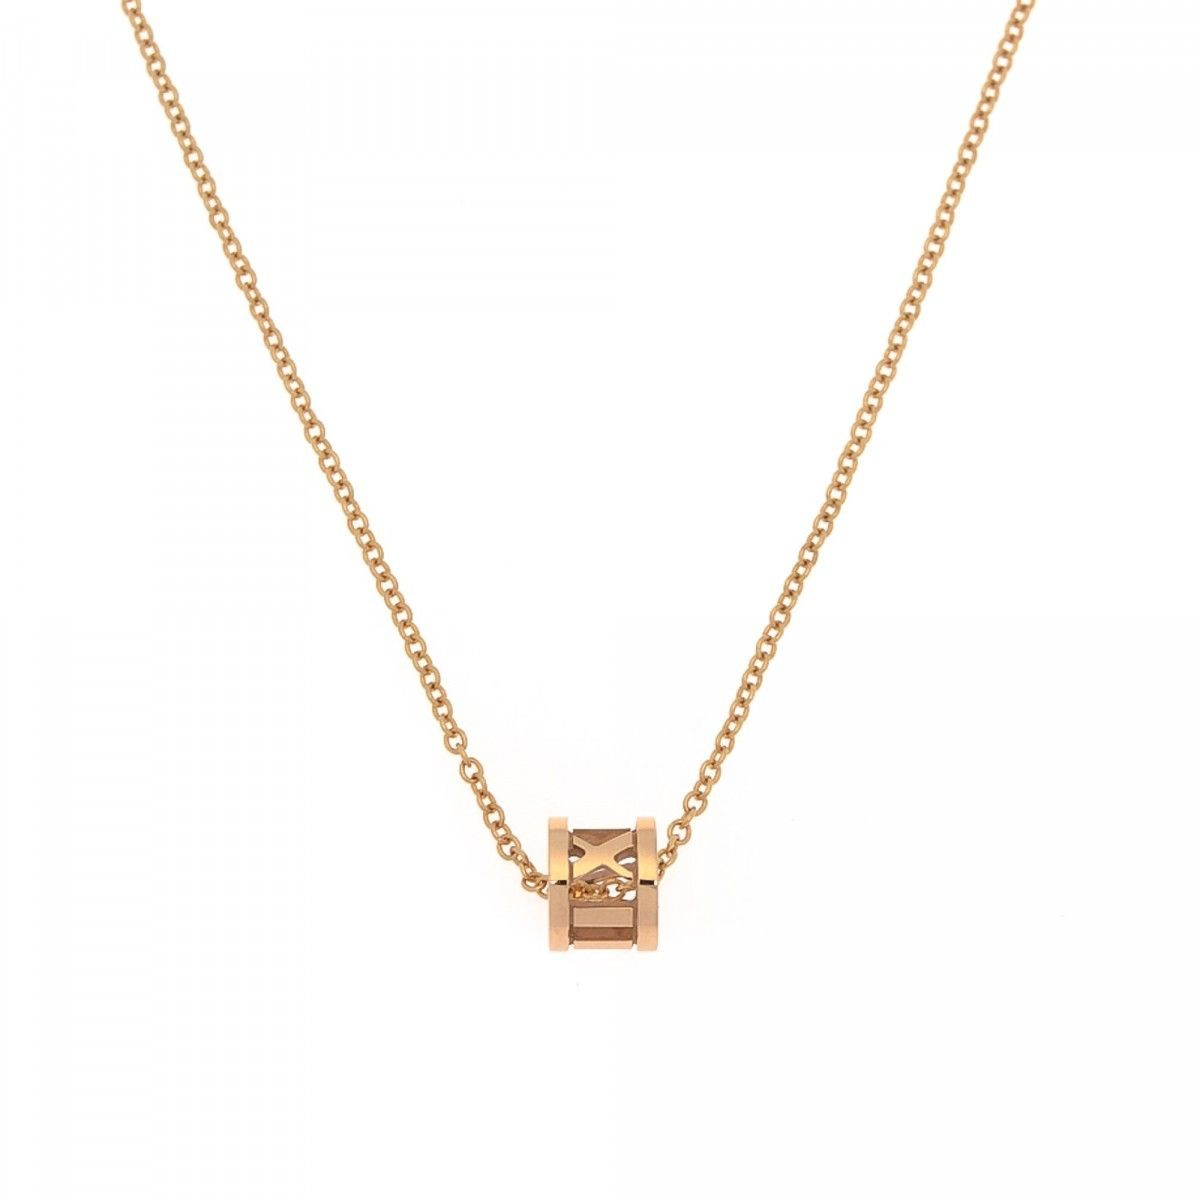 necklaces images atlas tiffanyandco pendant tiffany in round pinterest best gold necklace bold on jewelery